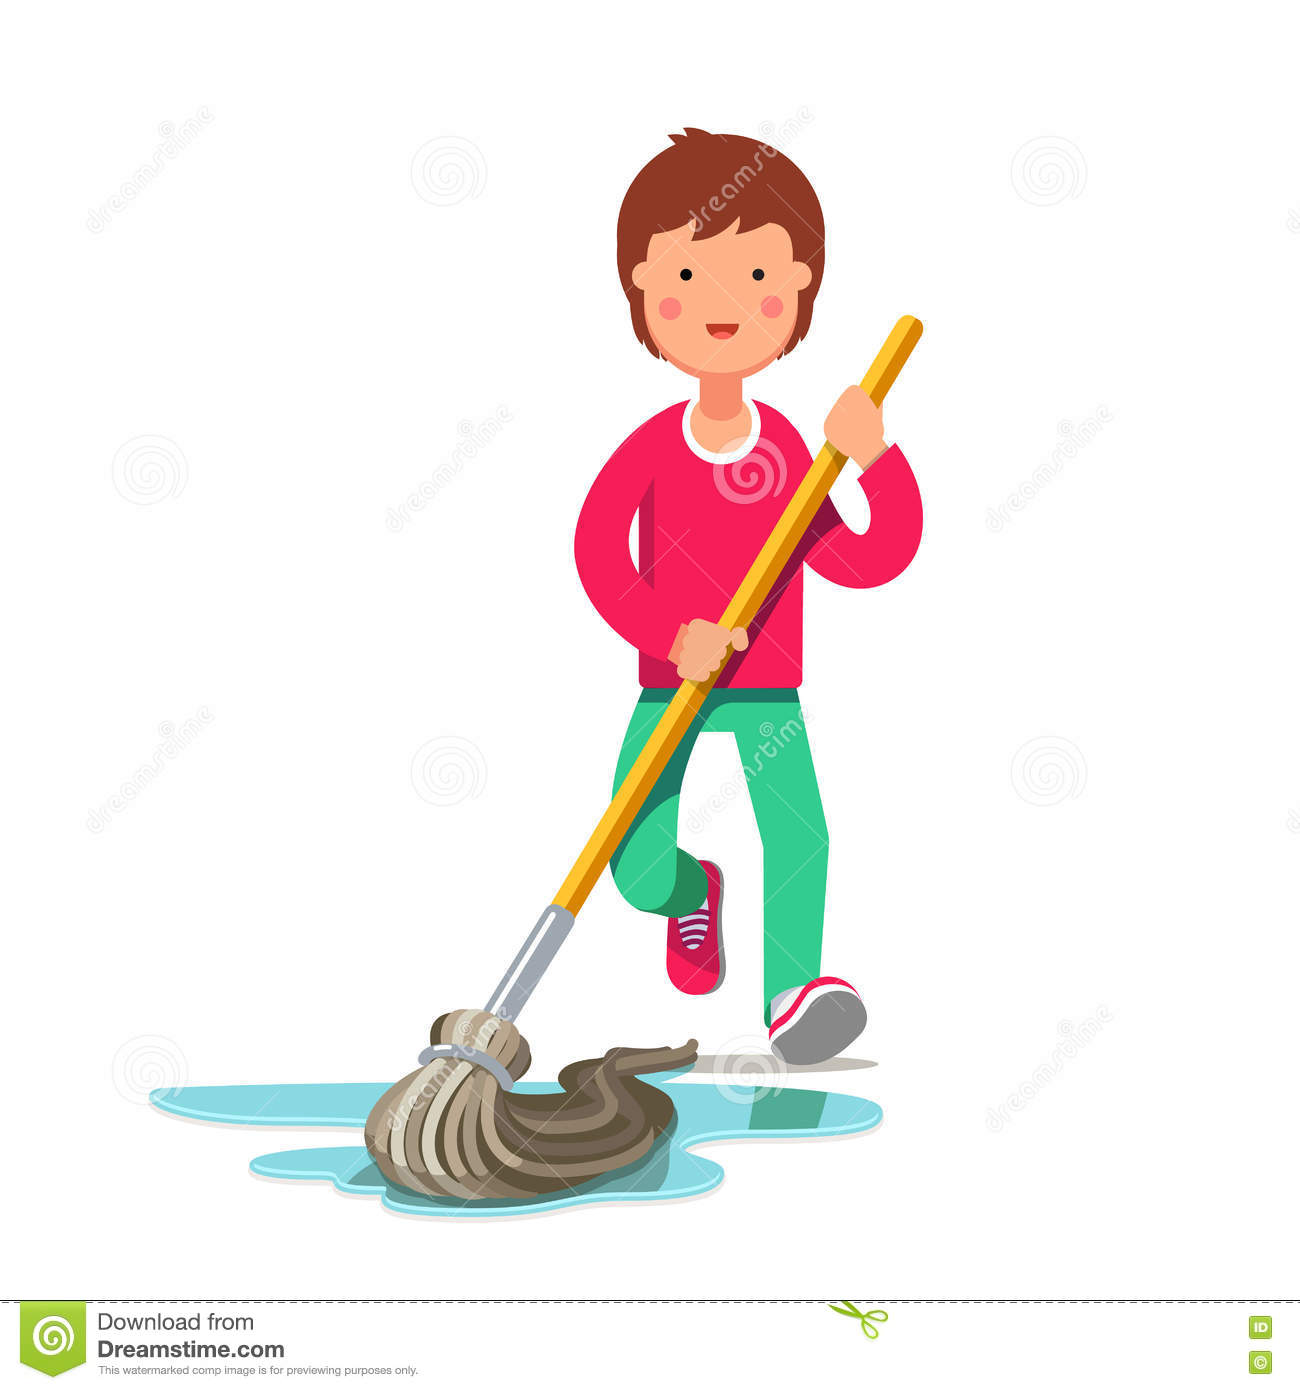 Kid free download best. Cleaning clipart washing floor